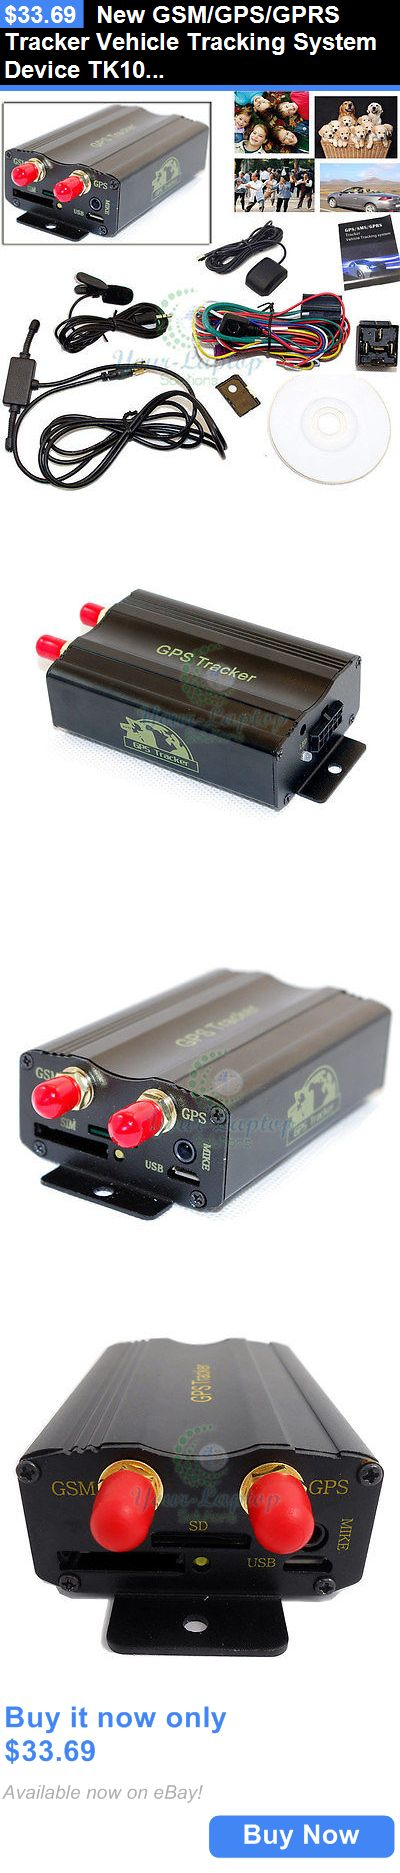 Tracking Devices: New Gsm/Gps/Gprs Tracker Vehicle Tracking System Device Tk103a With Alarm BUY IT NOW ONLY: $33.69